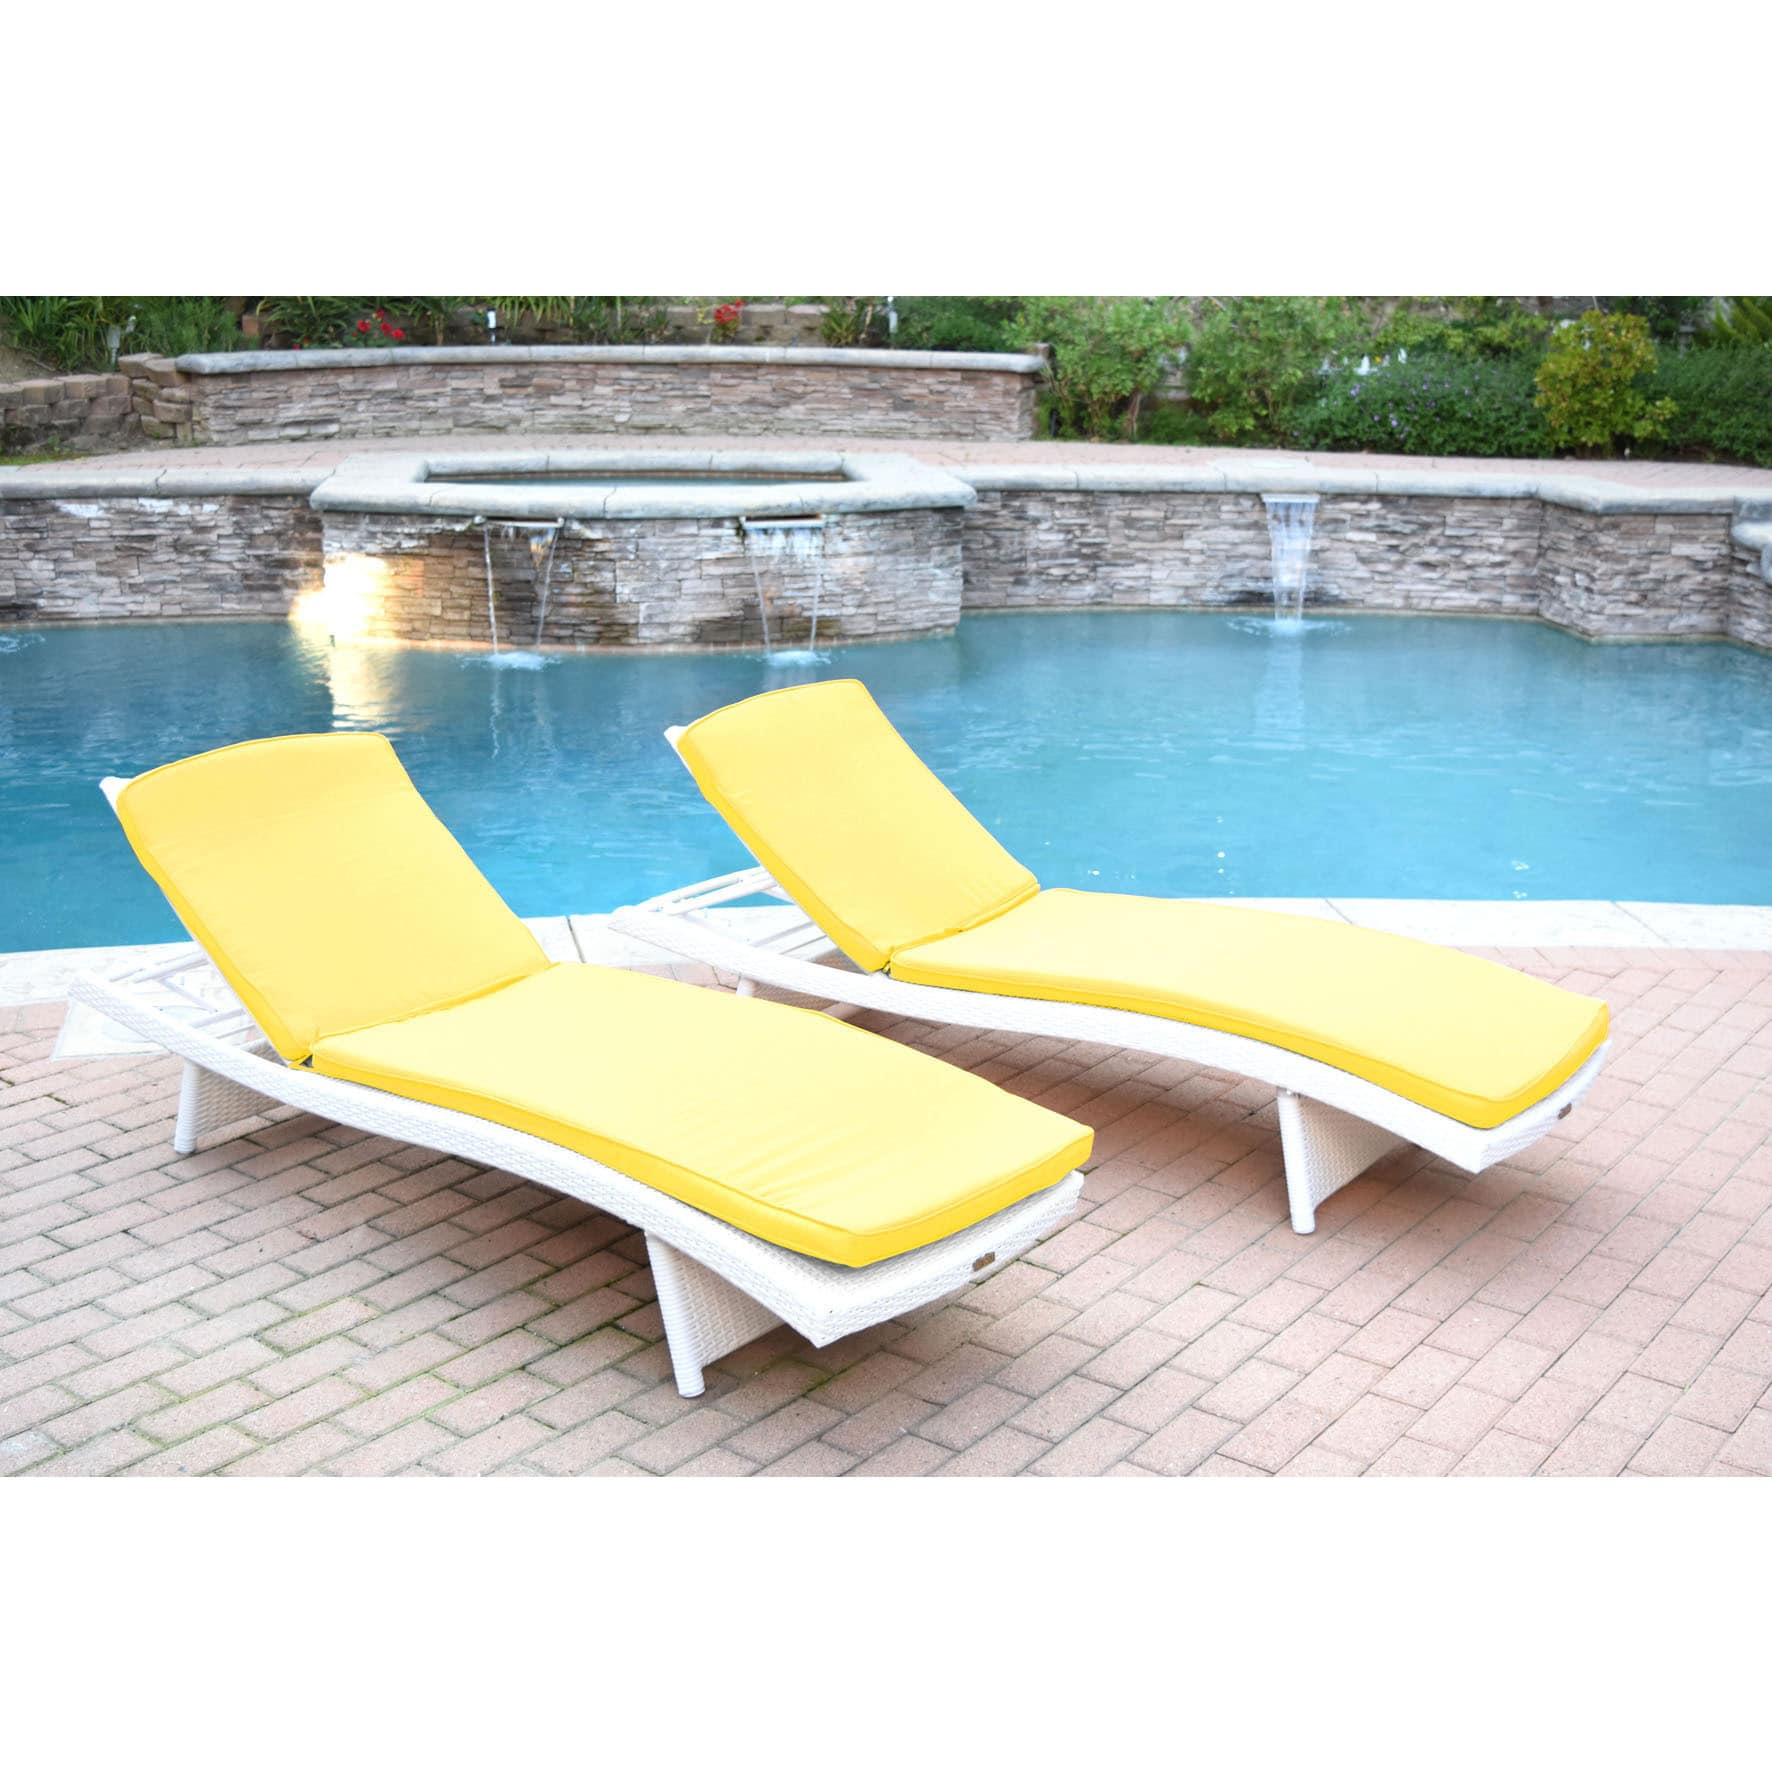 Jeco White Wicker Adjustable Chaise Lounger with Cushions (Set of 2)